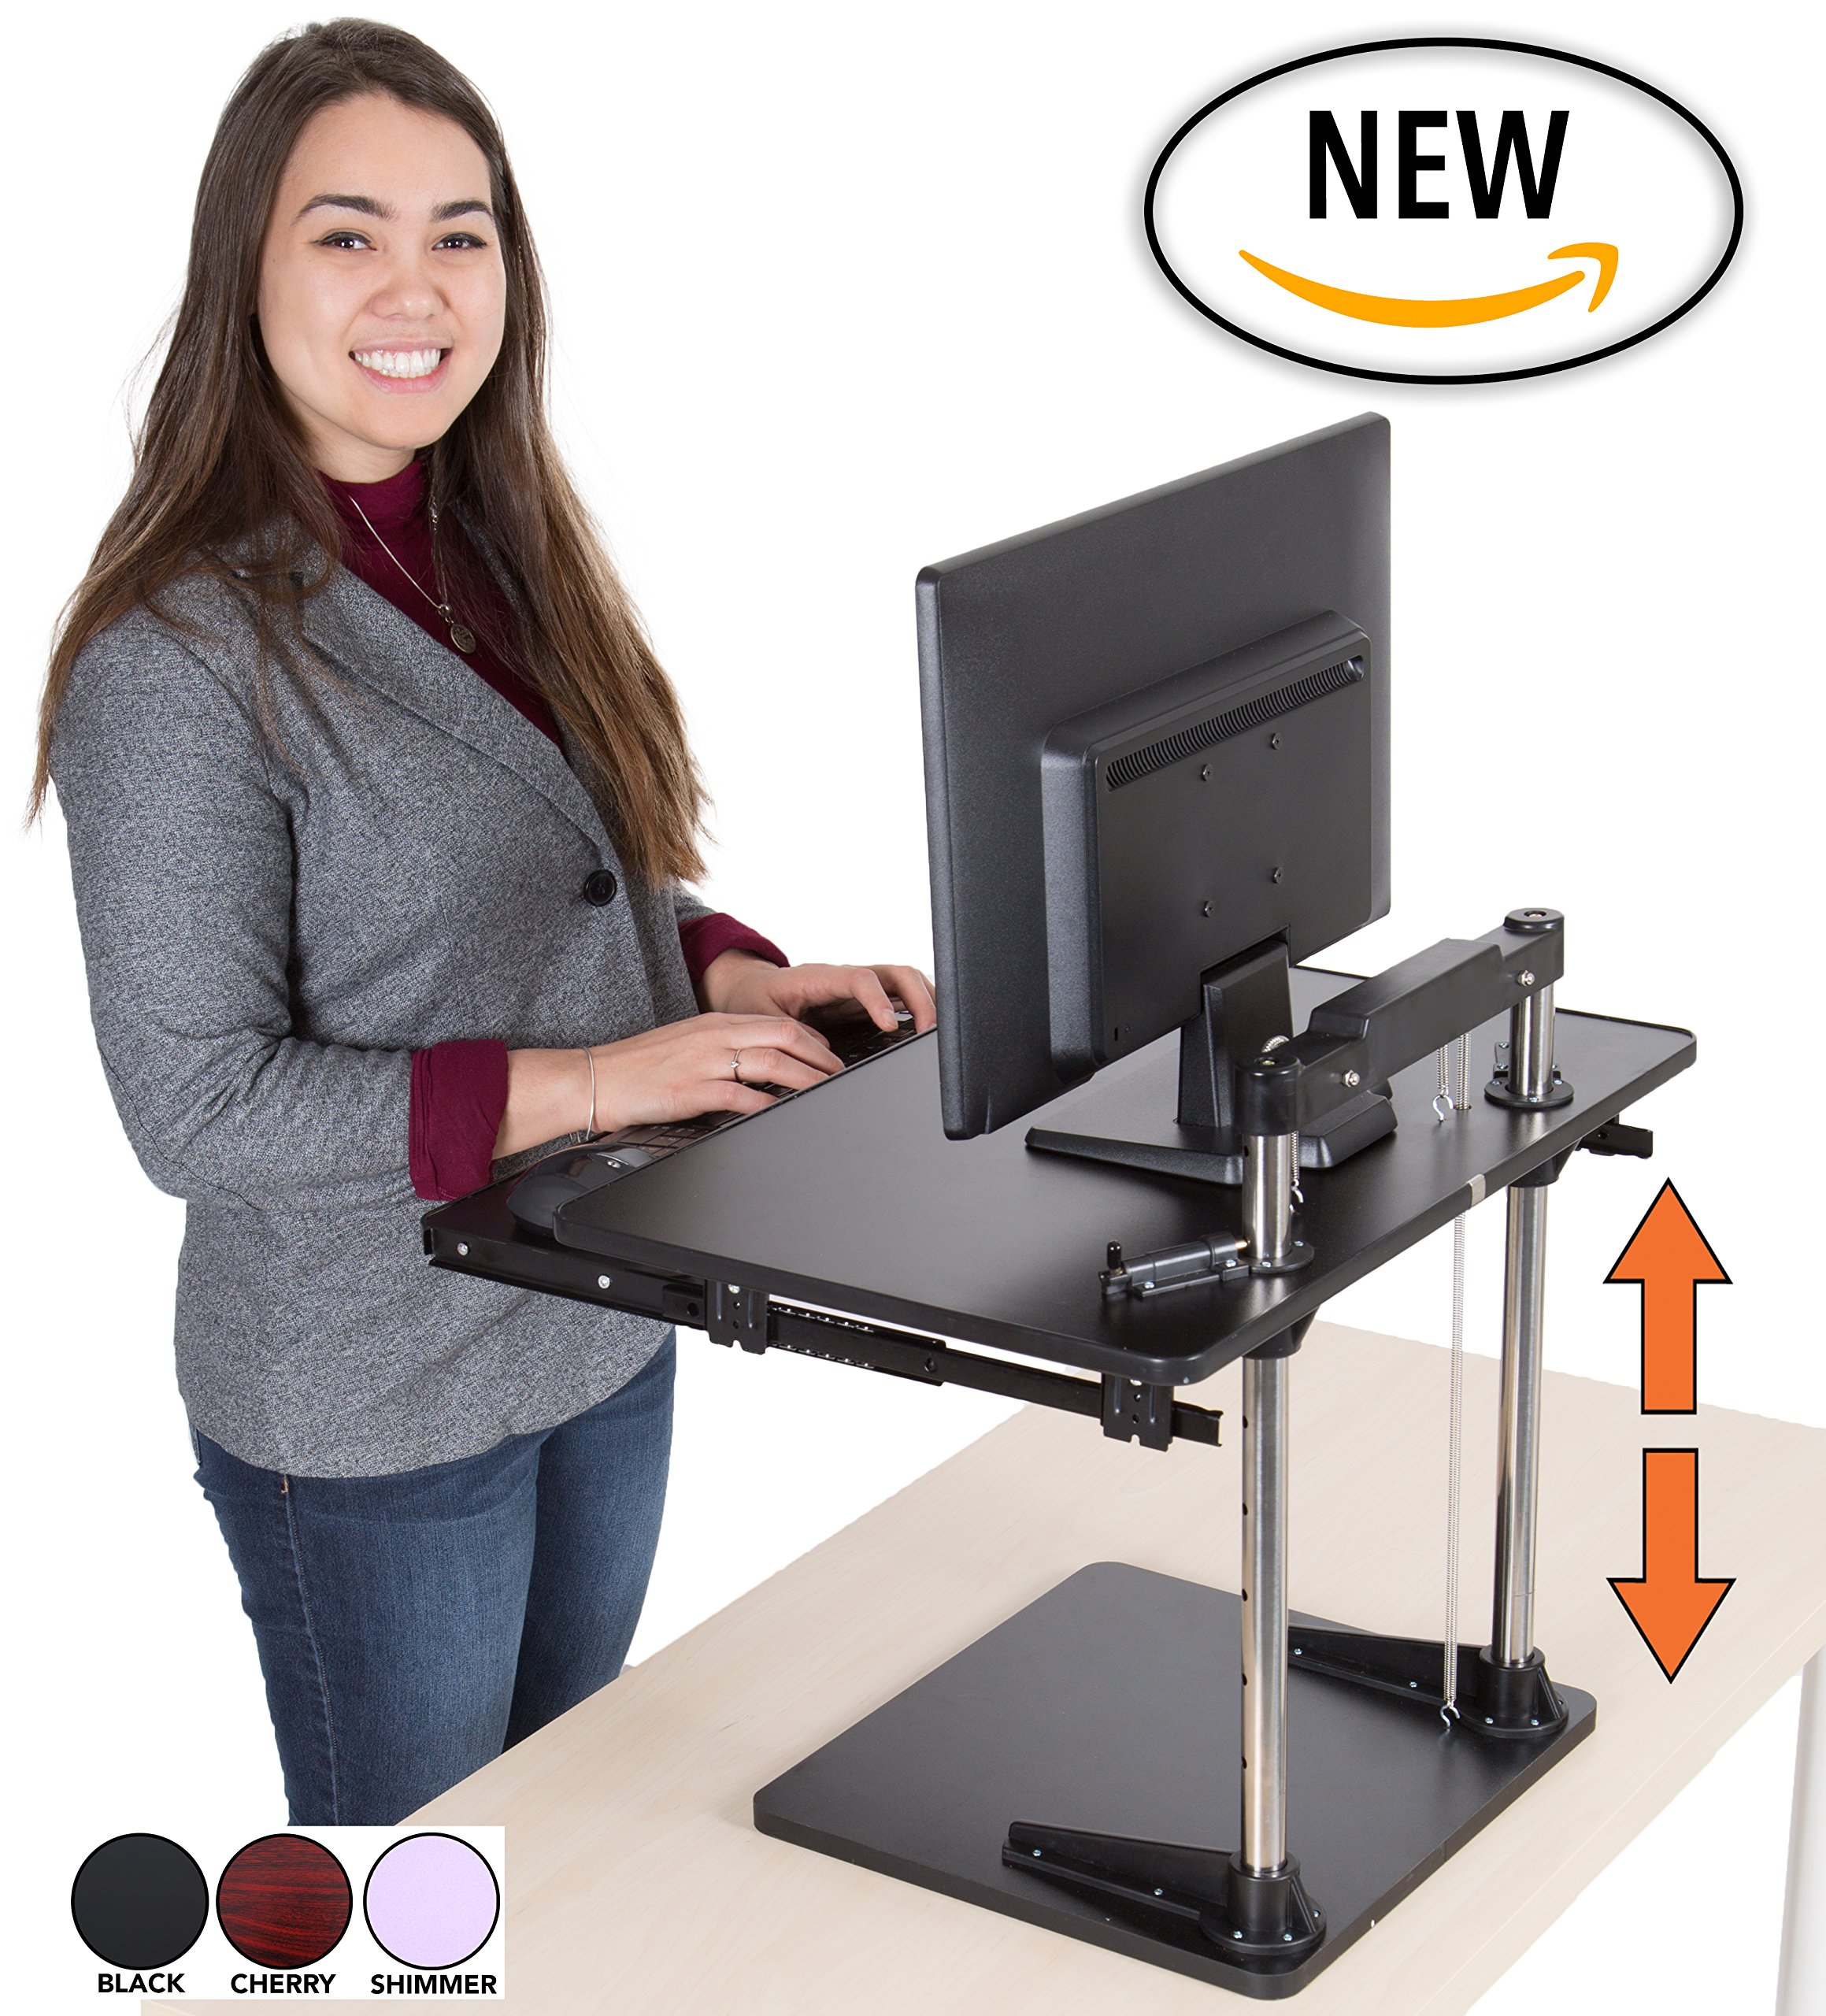 The UpTrak Metro Standing Desk & Bonus Keyboard Tray | Sit-to-Stand Desk Converter by Award-Winning Stand Steady | Spring-Assisted LIFT! Height Adjustable Sit Stand Desk! (Shimmer)